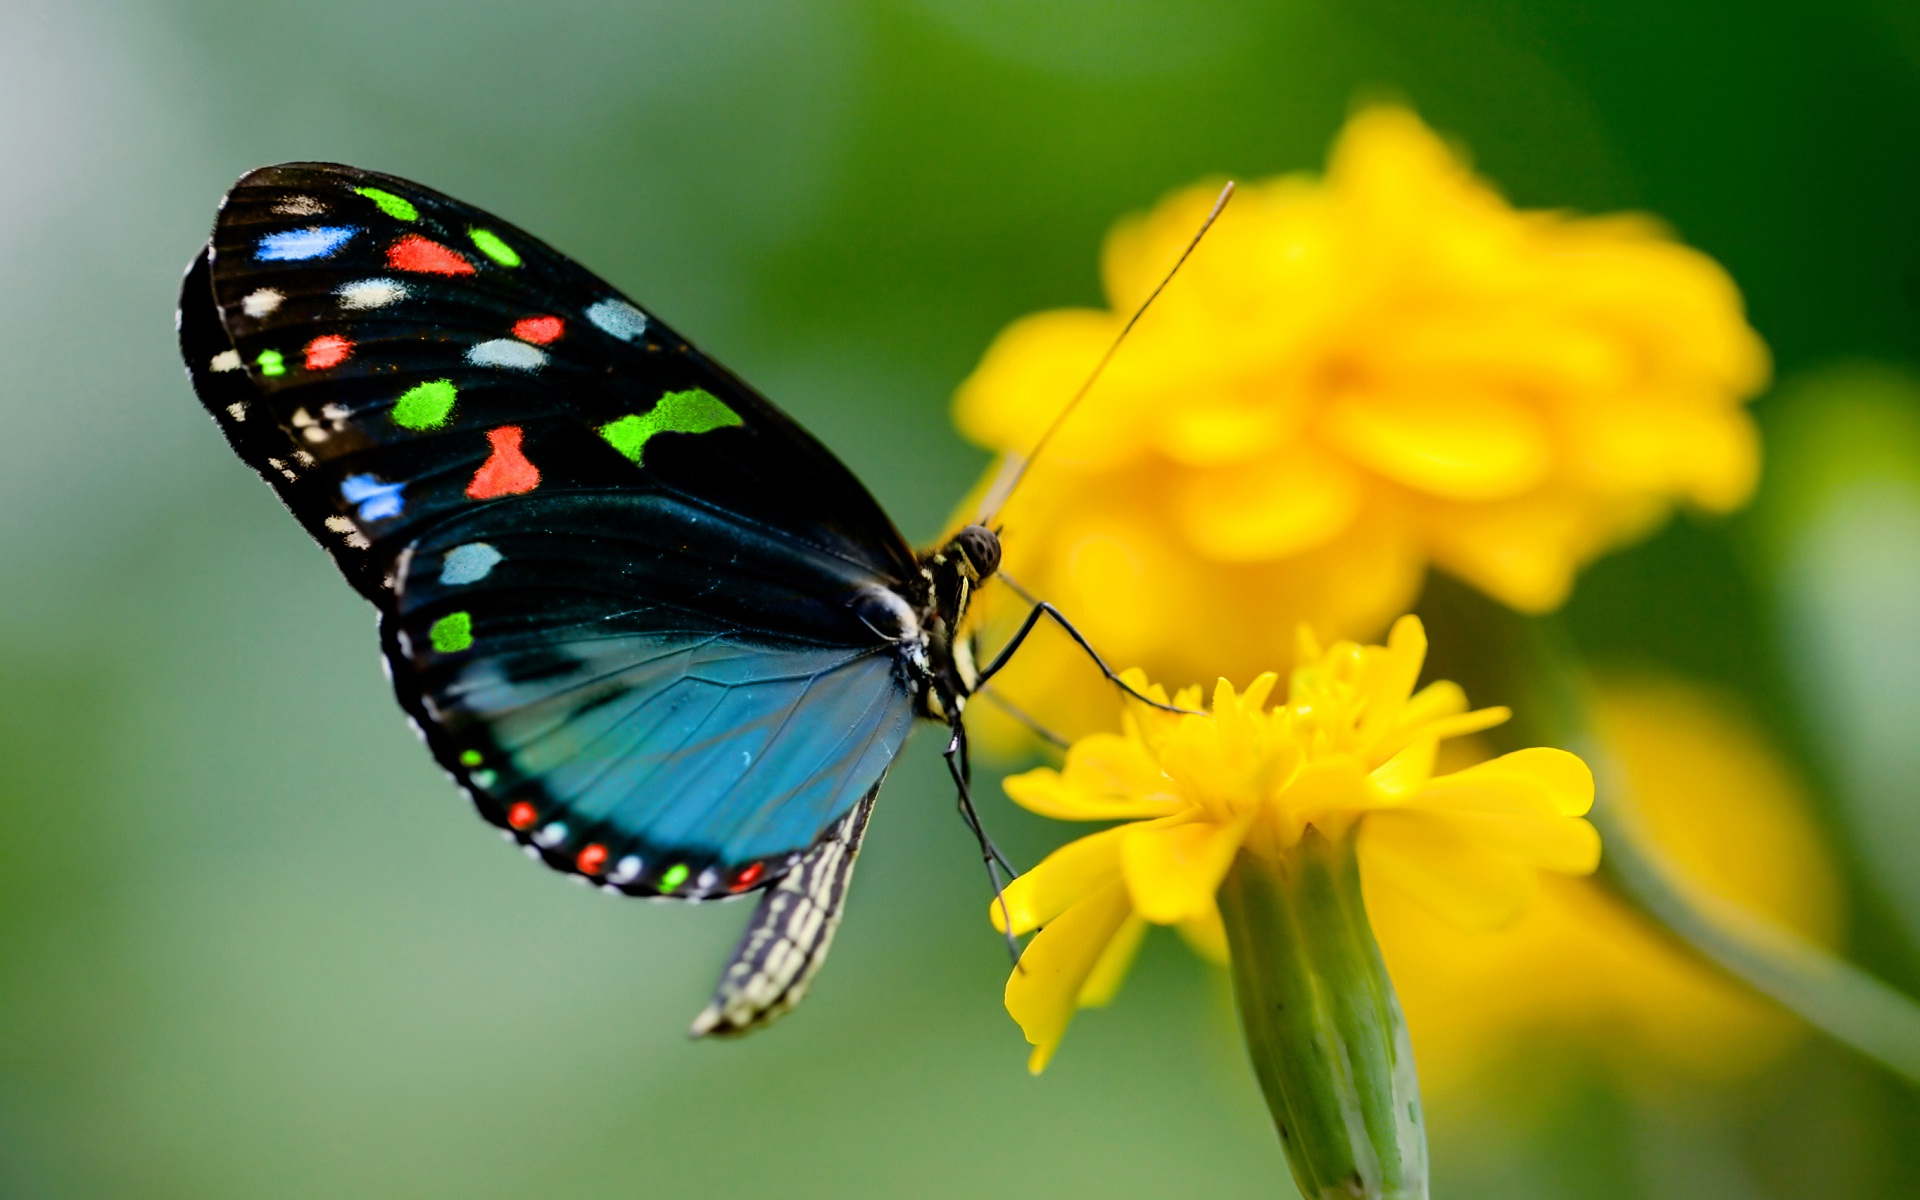 Butterfly on yellow flowers so nice images hd wallpapers hd wallpapers tags butterfly nice images yellow flowers mightylinksfo